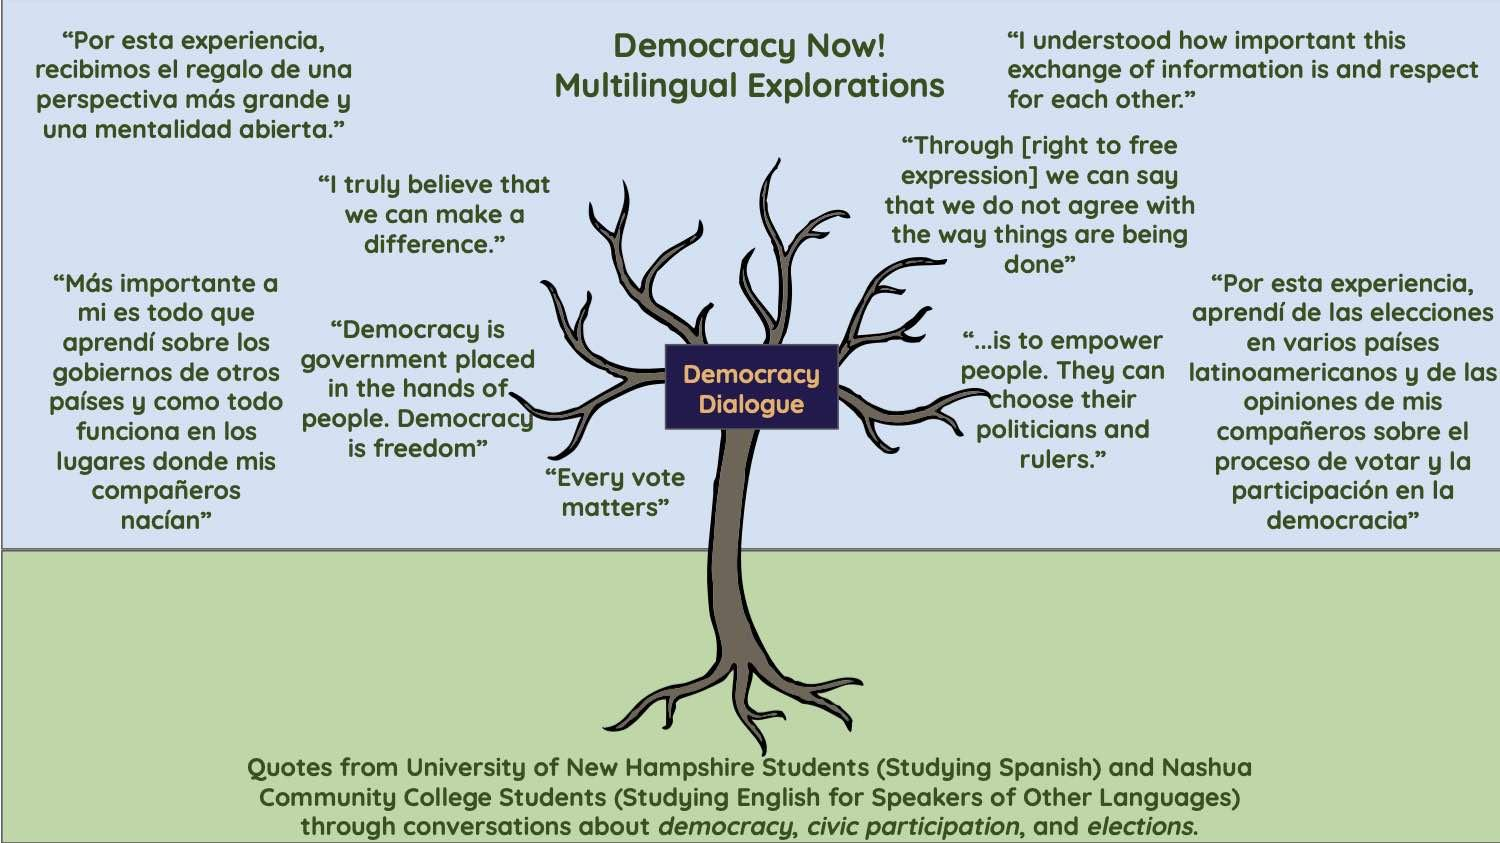 powerpoint slide, tree with many branches representing many groups involved in democracy now